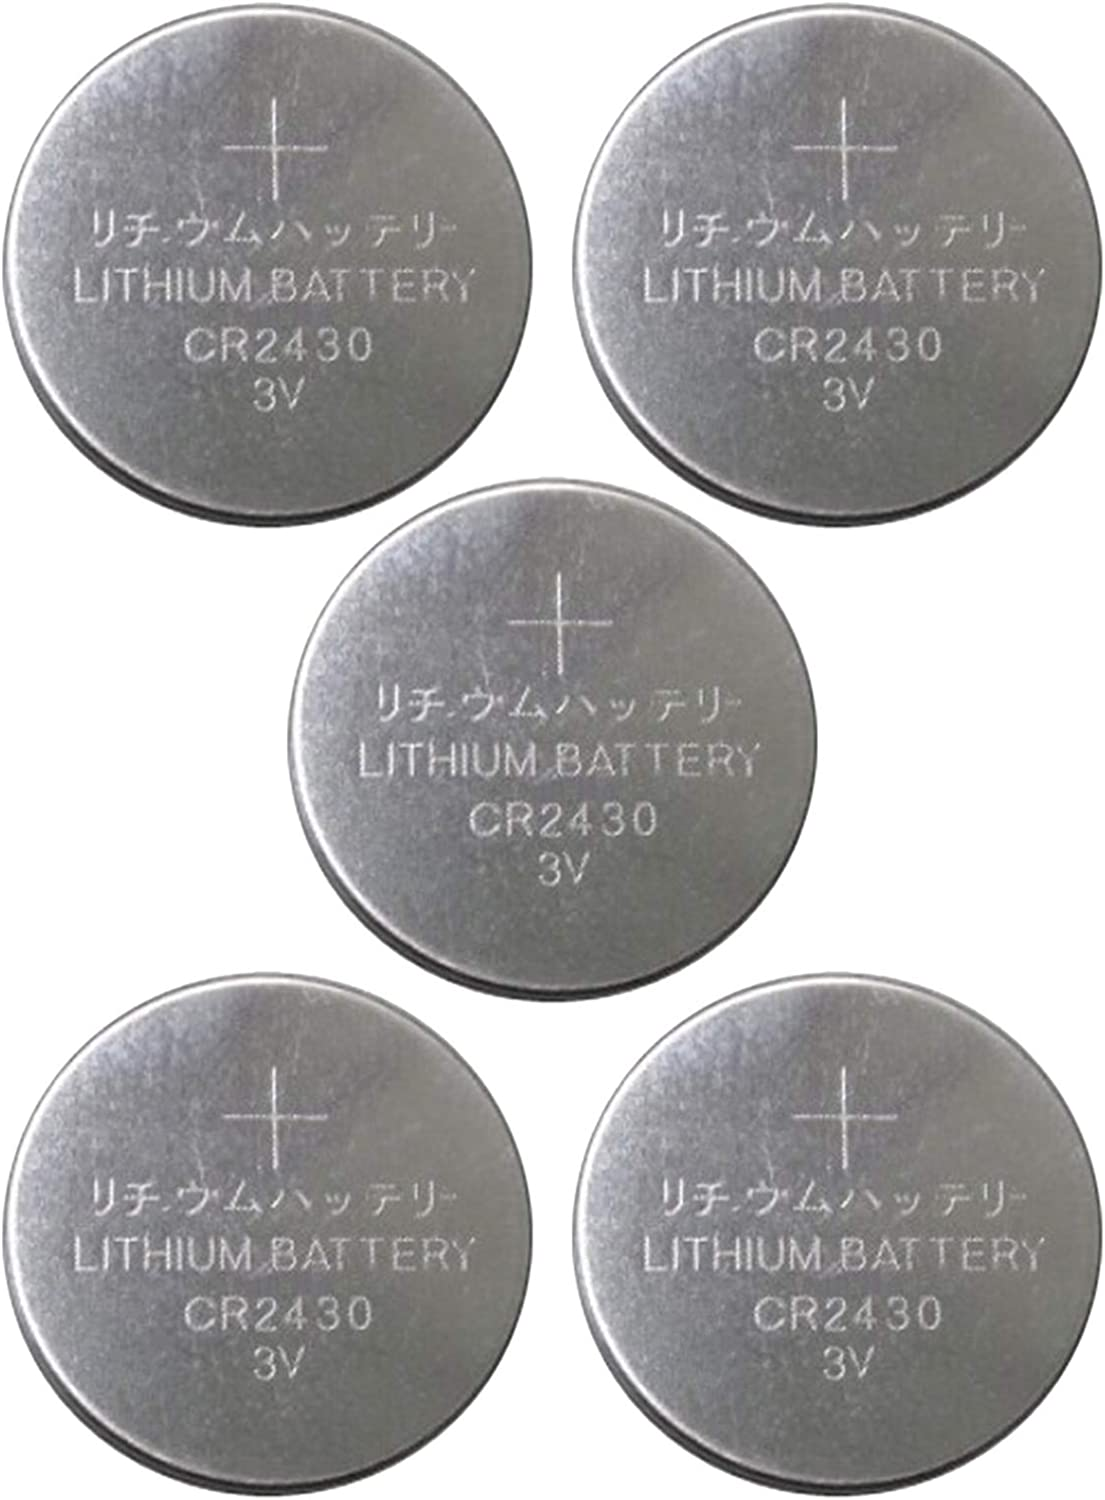 5PK 3V Coin Replacement Battery For Ke Remotes Golite PC Backups National uniform free shipping Los Angeles Mall